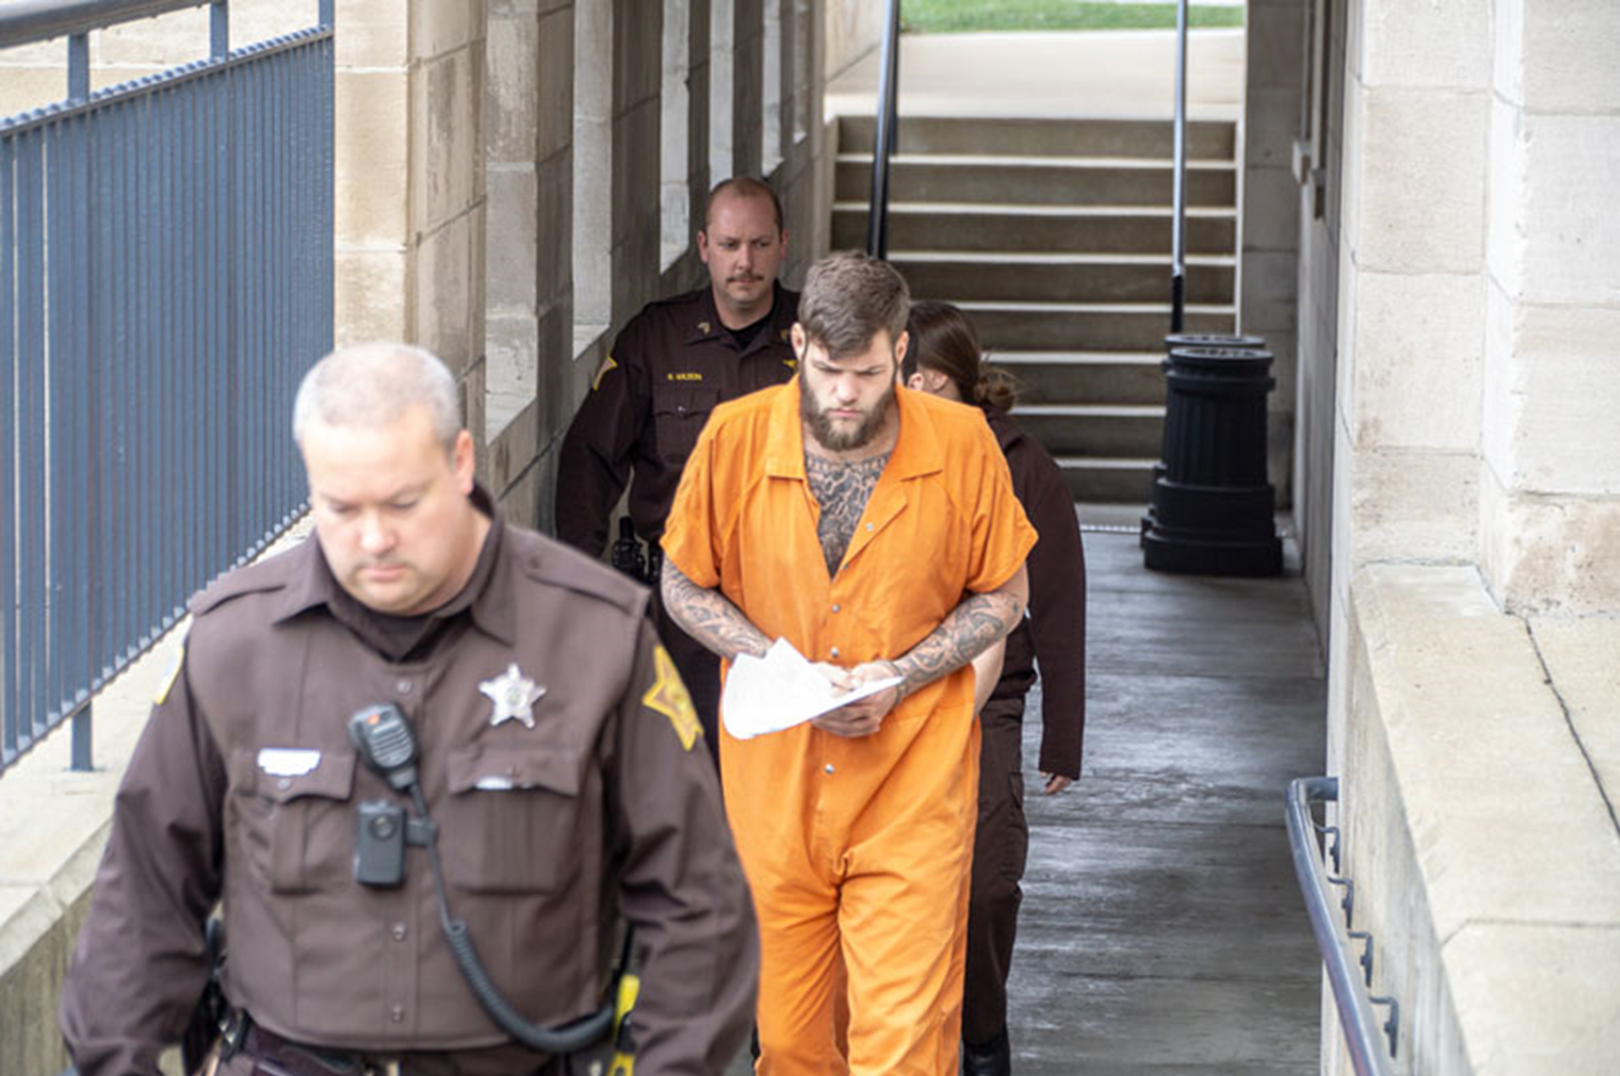 St. Anthony Murder Suspect Withdraws Insanity Defense, Asks For Speedy Trial